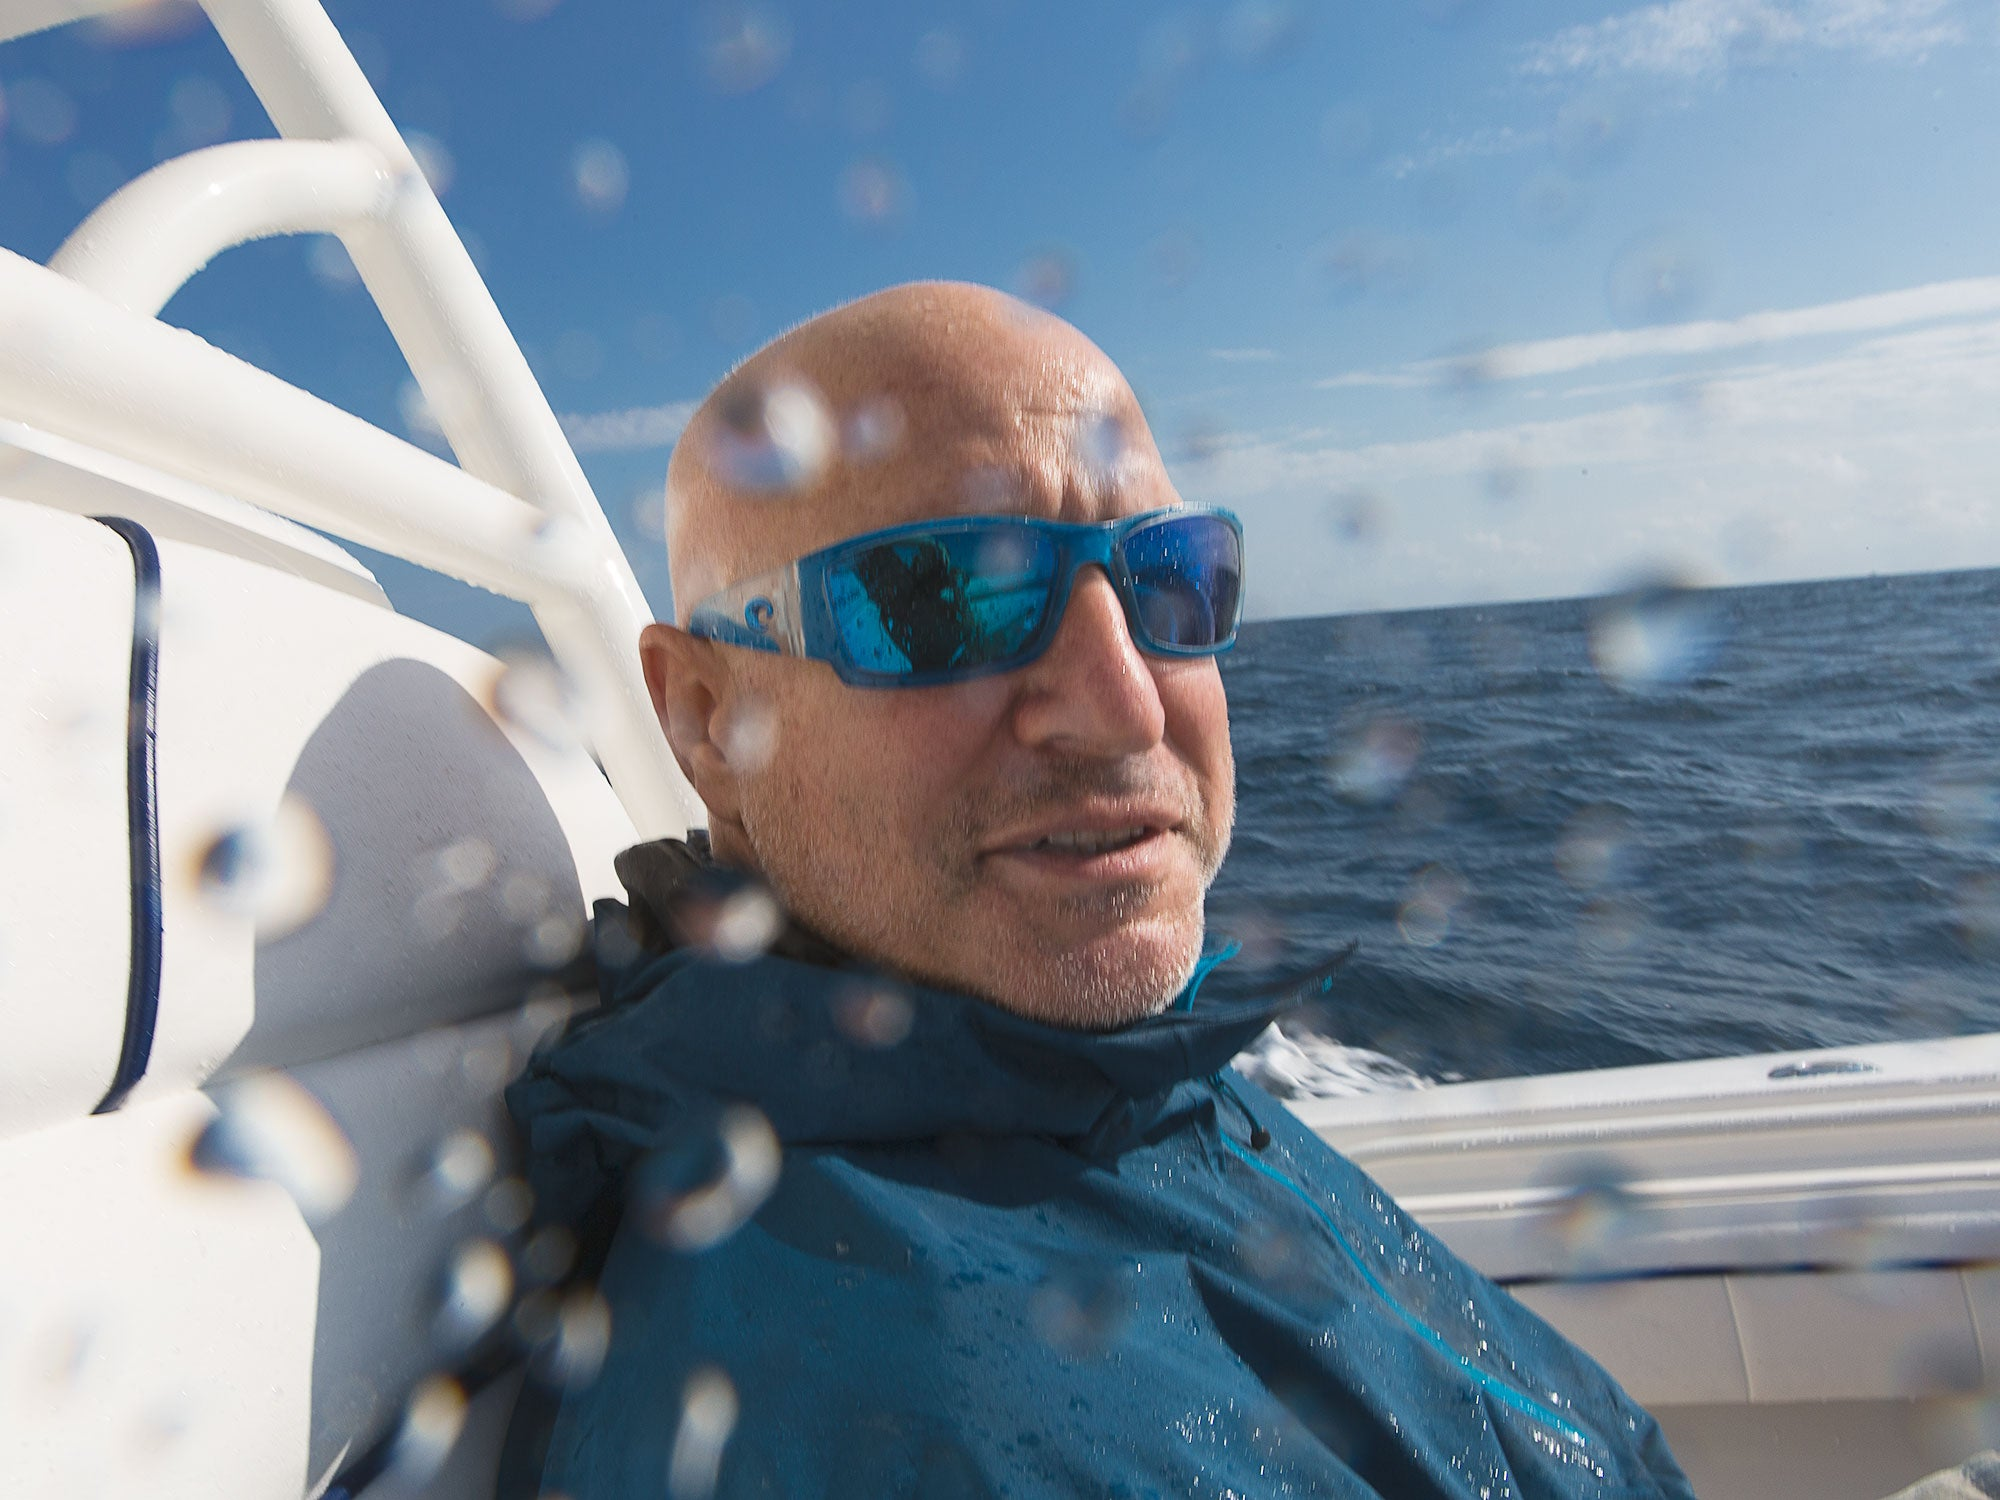 Tom Colicchio on What Makes Great Seafood